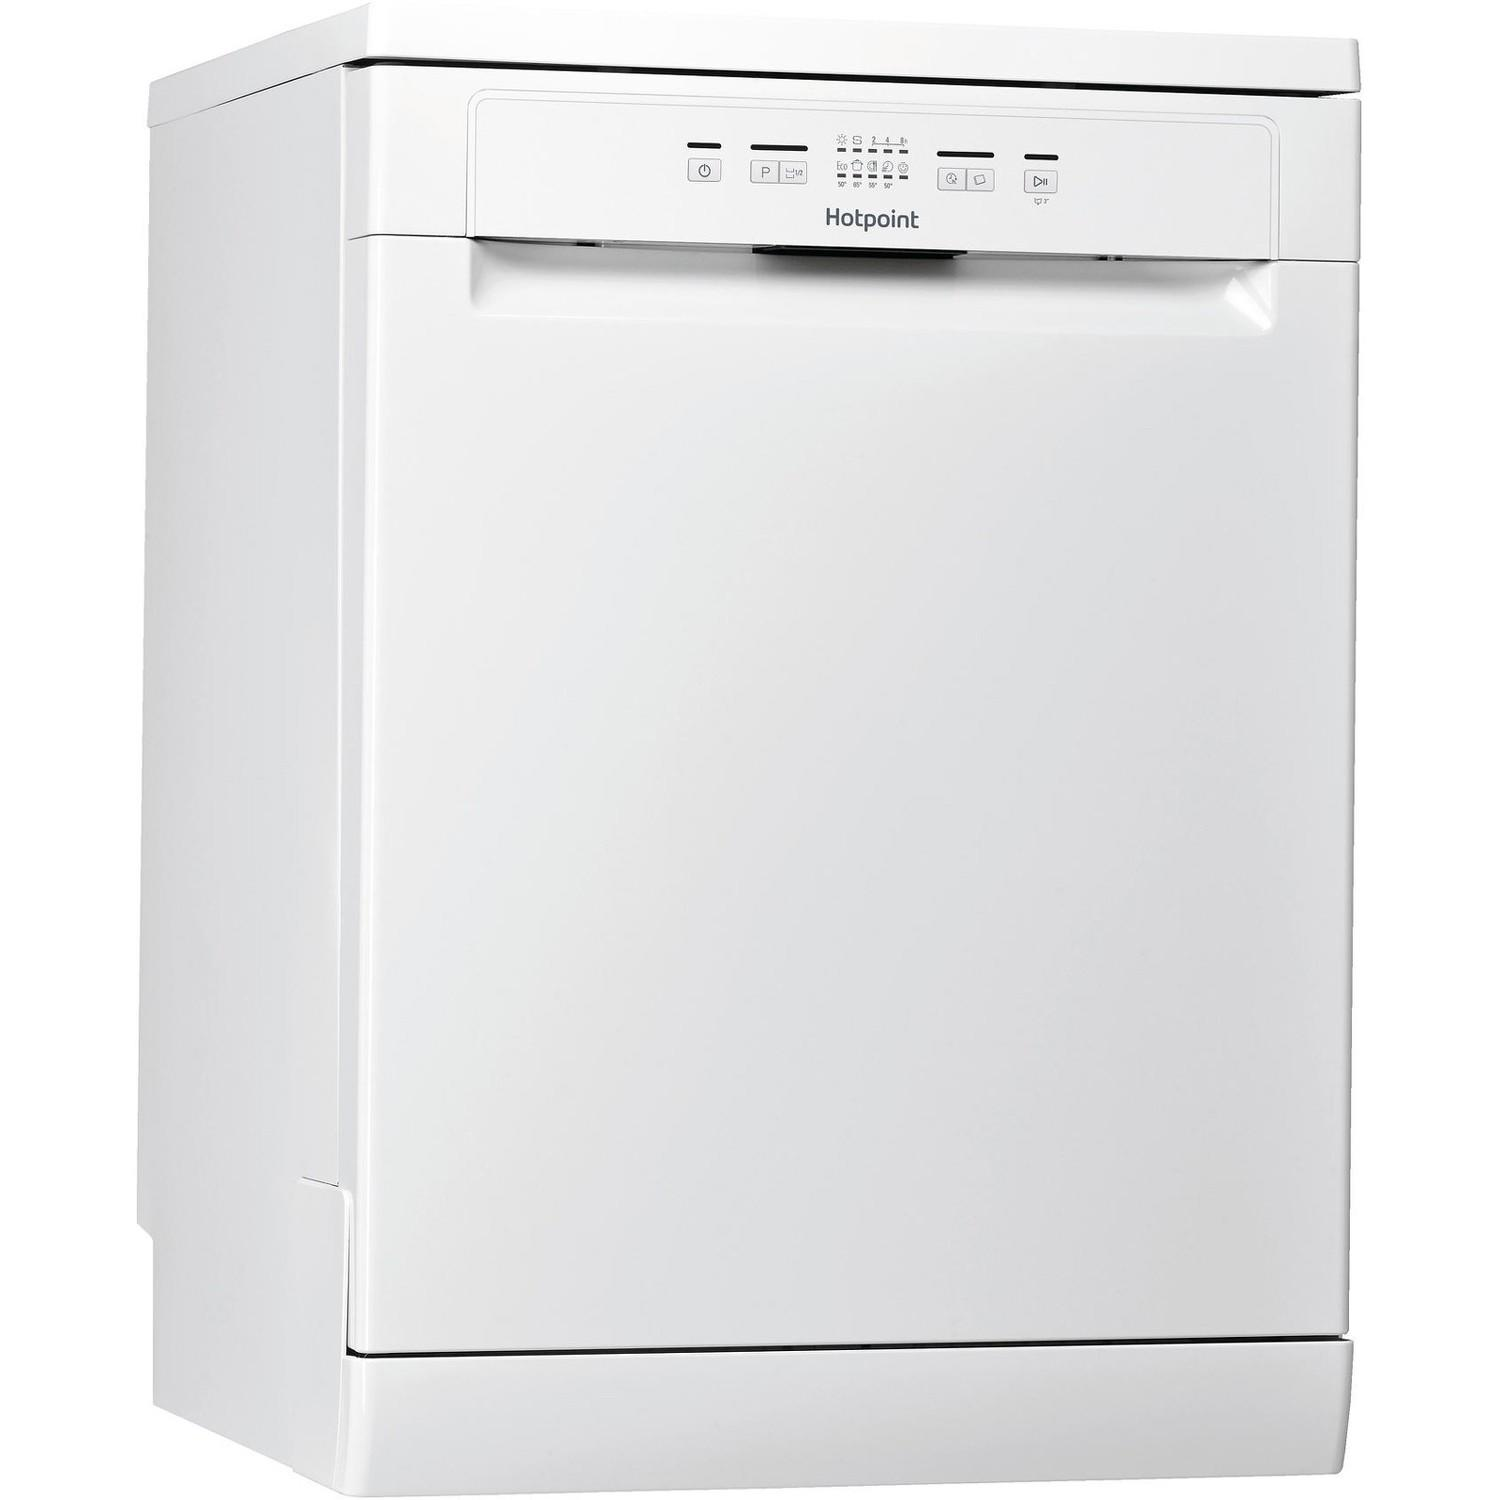 Hotpoint HEFC2B19C Freestanding Full Size Dishwasher